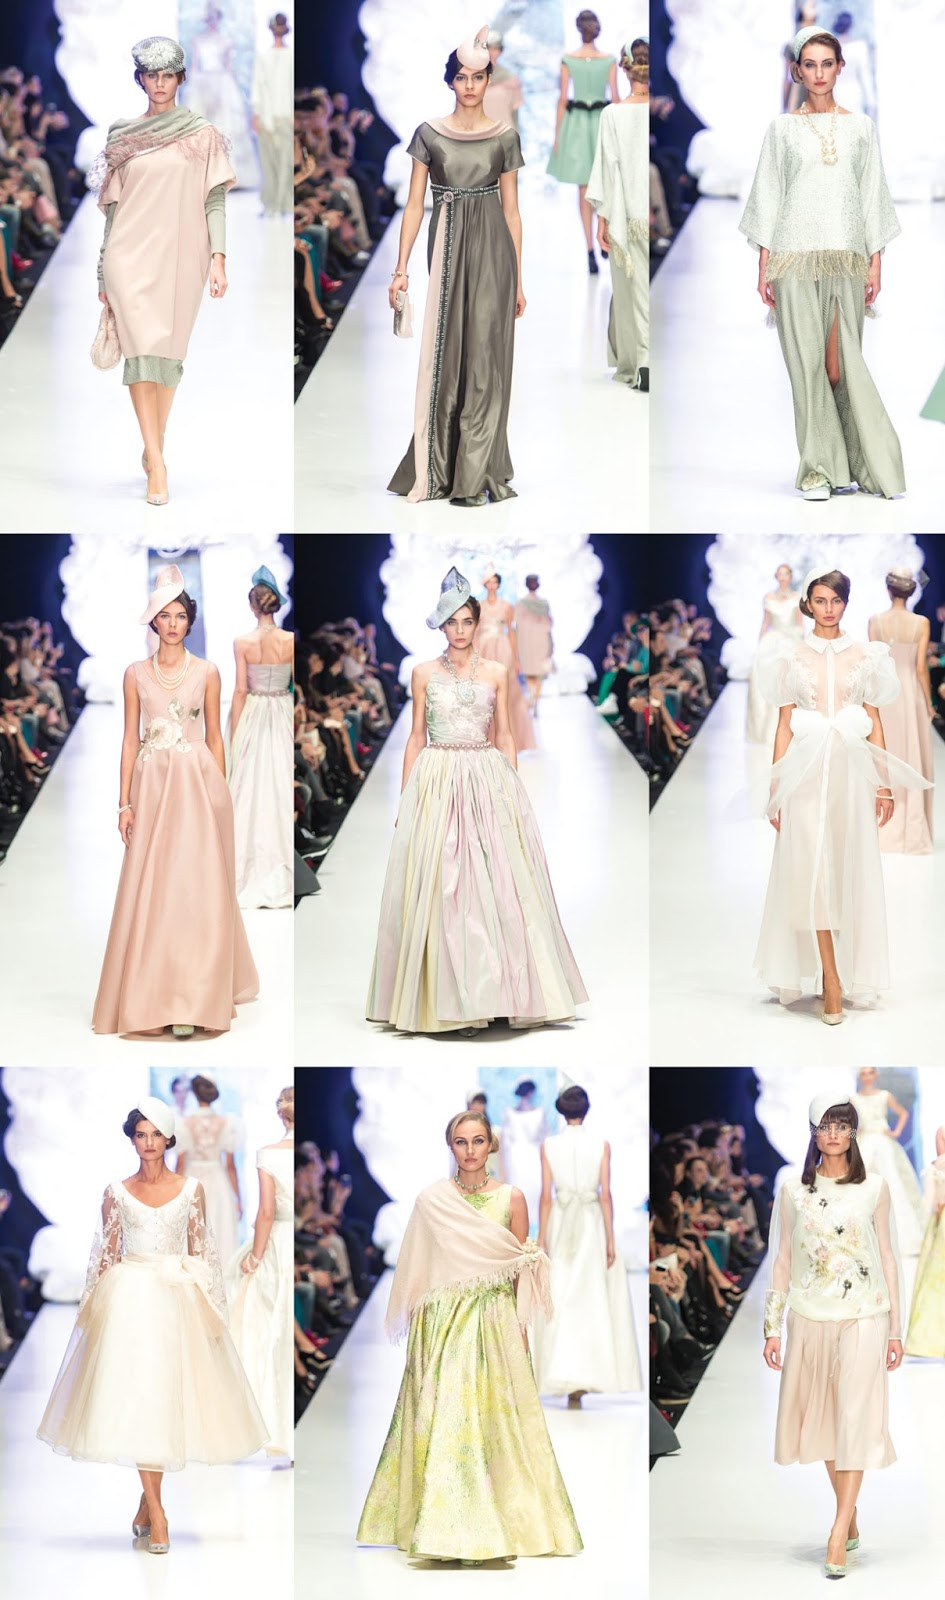 igor Gulyaev fashion show spring summer 2016 показ Игоря Гуляева на Mercedes Benz Fashion Week весна лето 2016